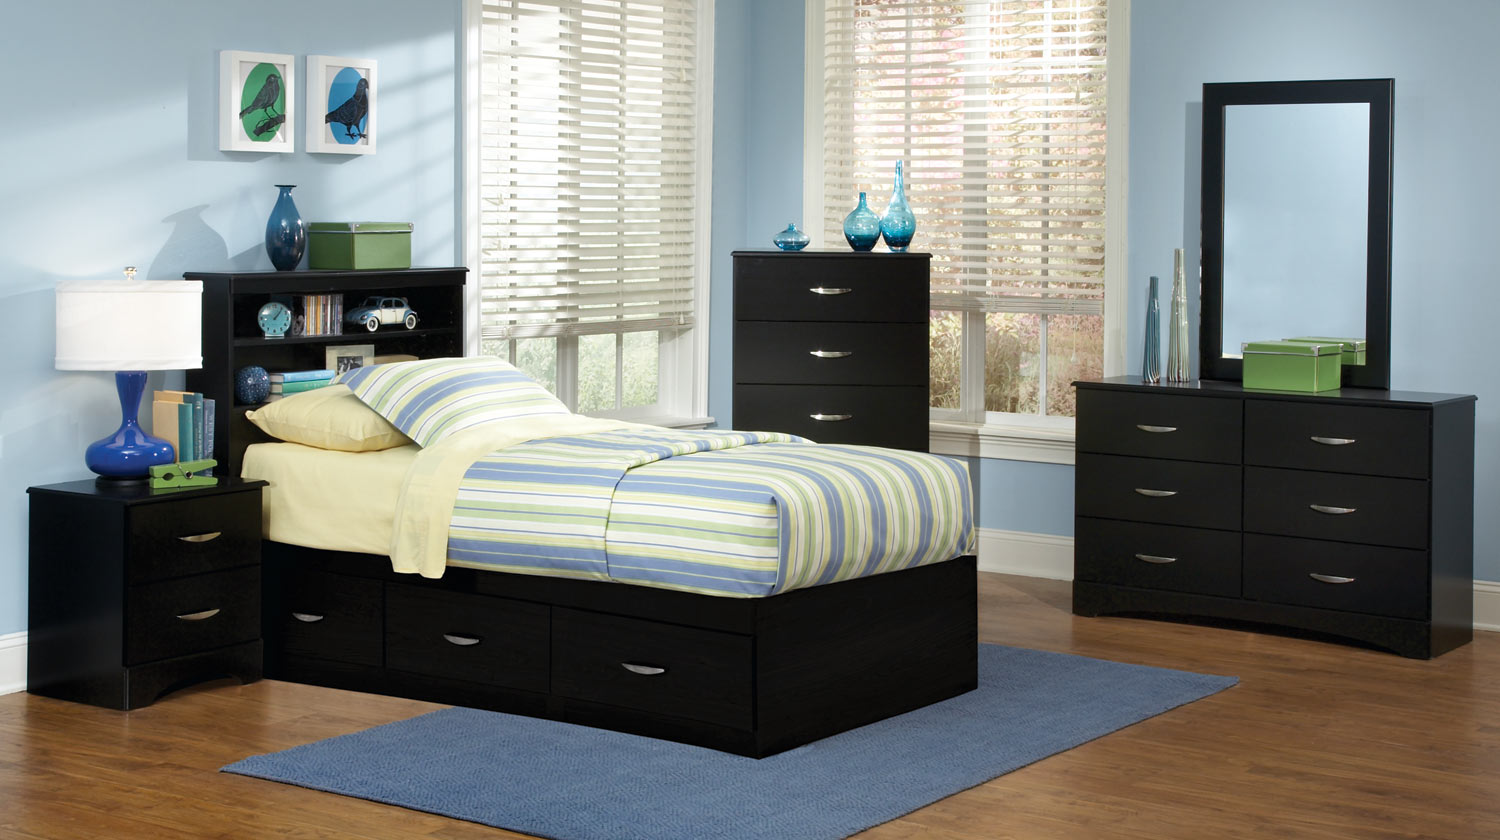 Kith Furniture Jacob 3 Drawer Mates Bedroom Set